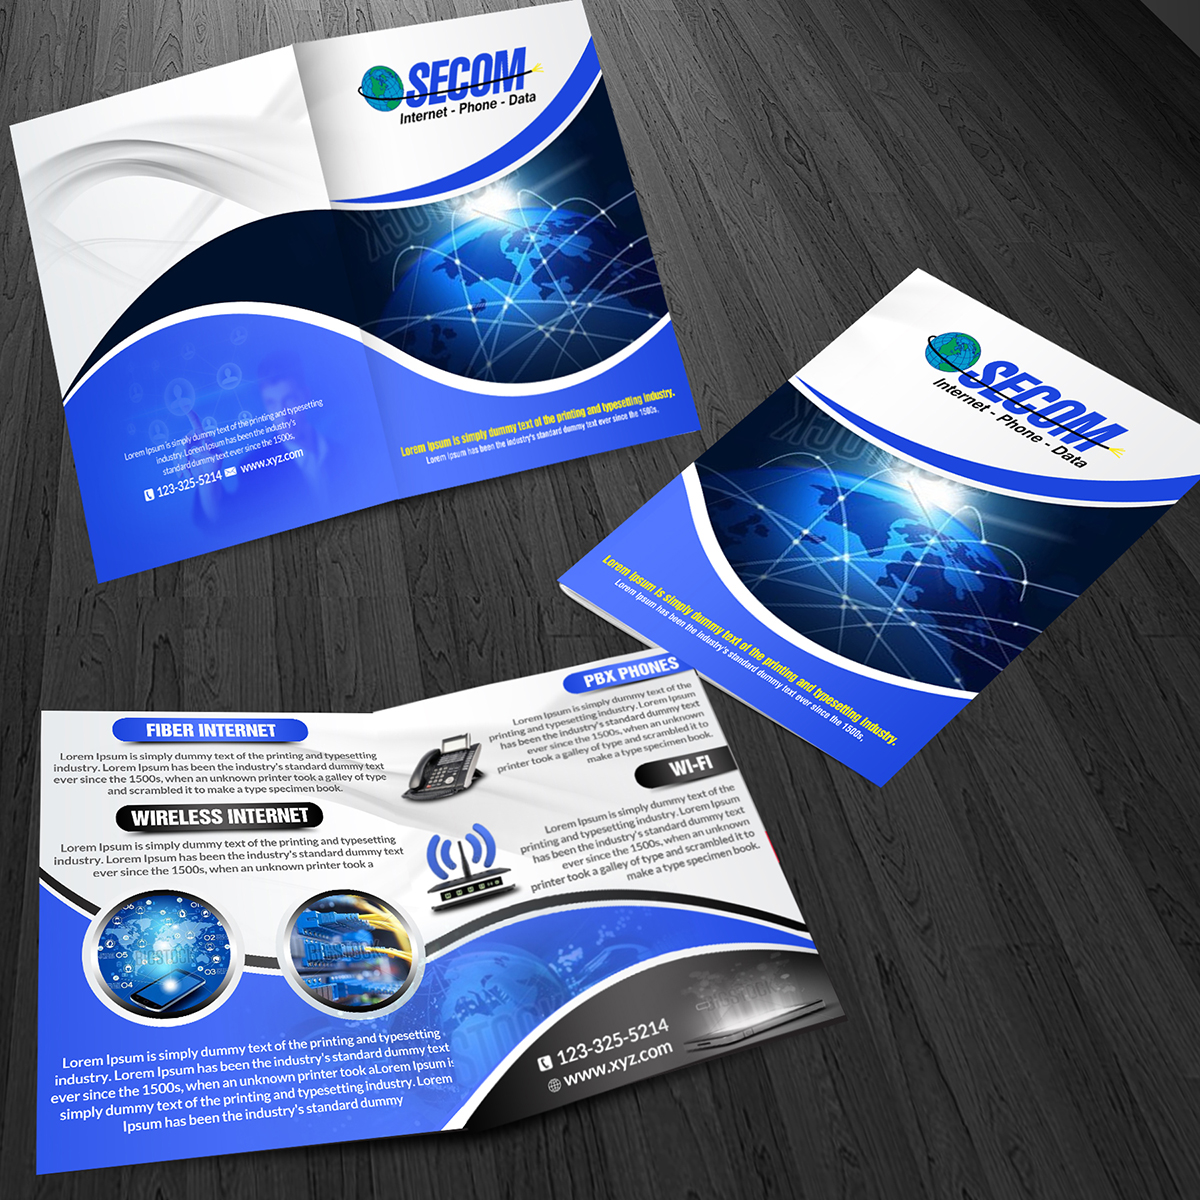 Marketing brochure design for secom by esolz technologies for Marketing brochure design